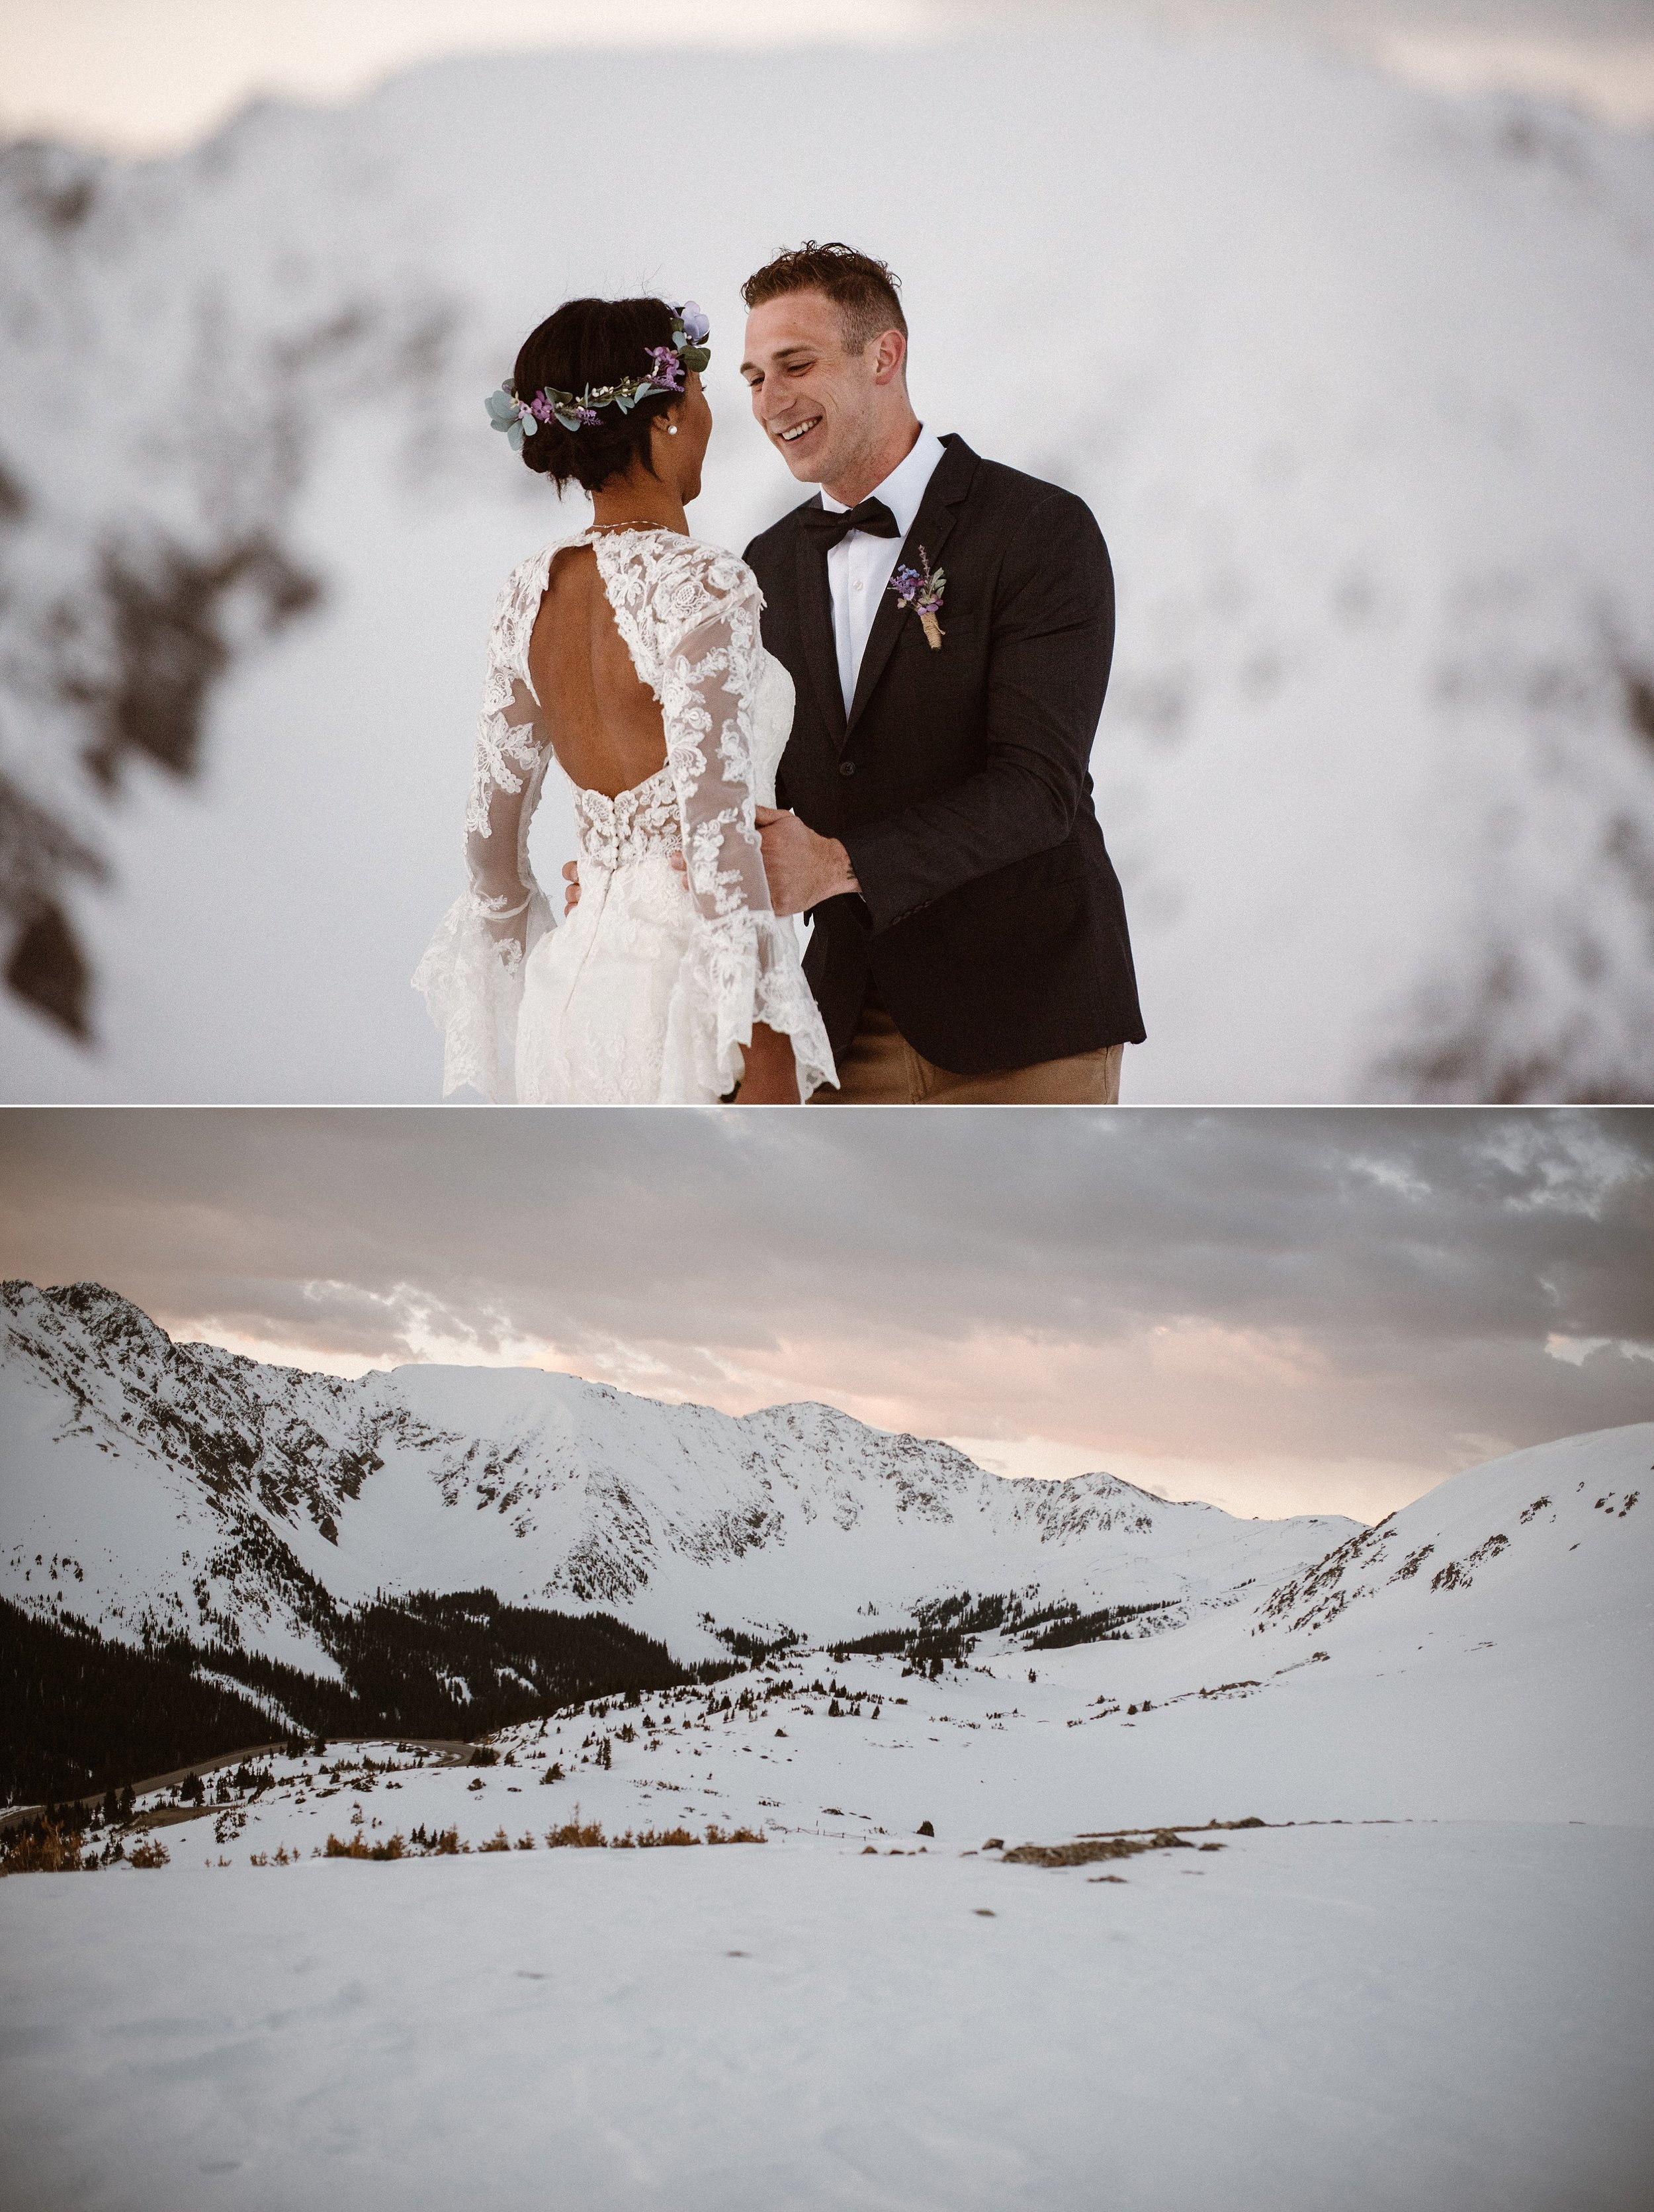 With a soft tap on his shoulder, these would be the moments they would remember forever, the few minutes before they became husband and wife. This snowy Loveland Pass elopement photographed by Colorado native, Maddie Mae.